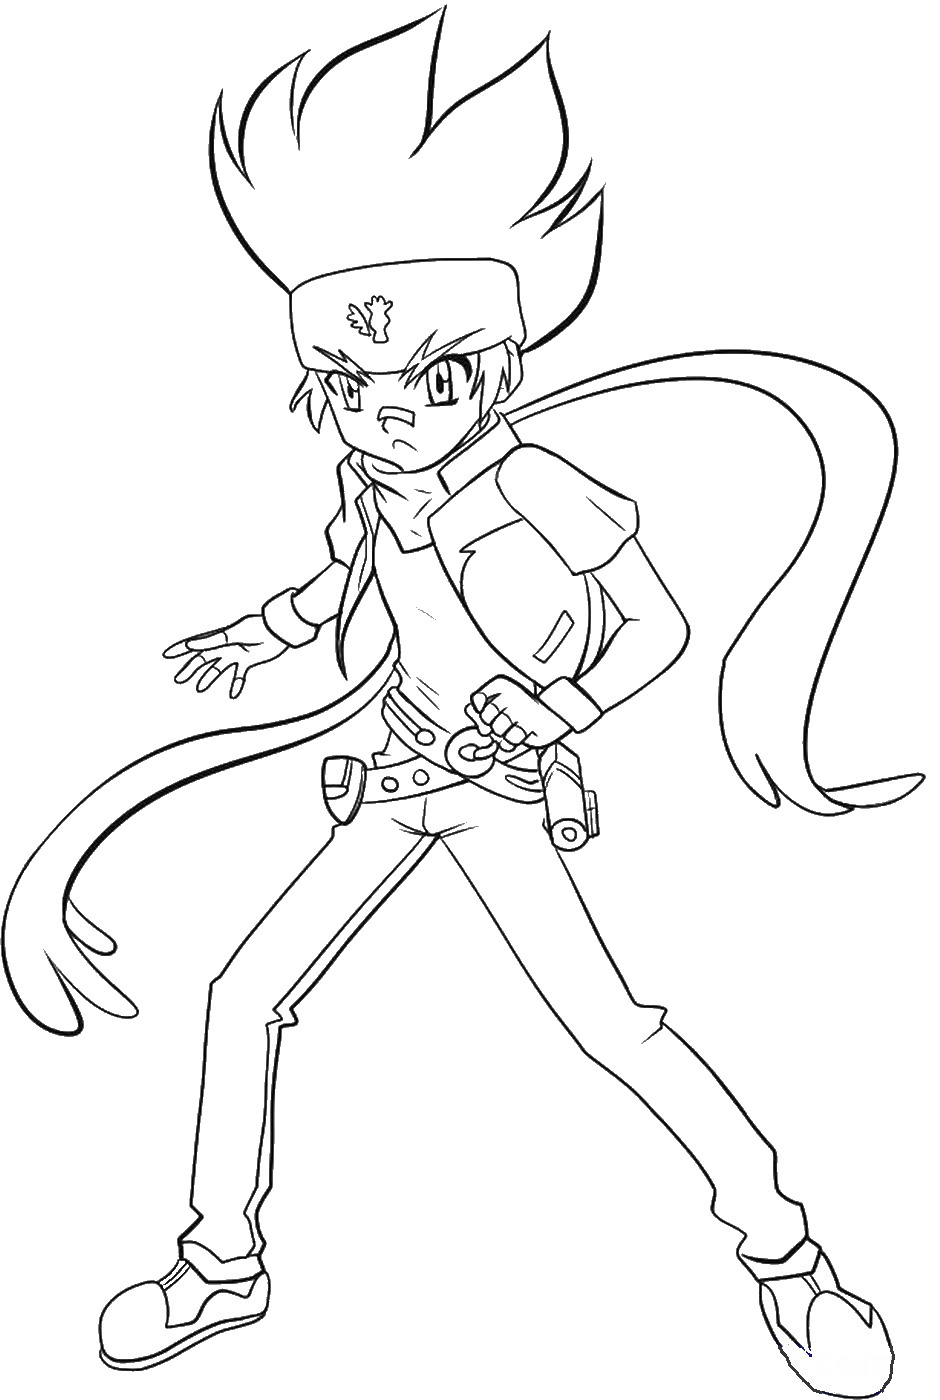 how to draw a beyblade beyblade coloring sheet pictures free for drawing today how to beyblade a draw